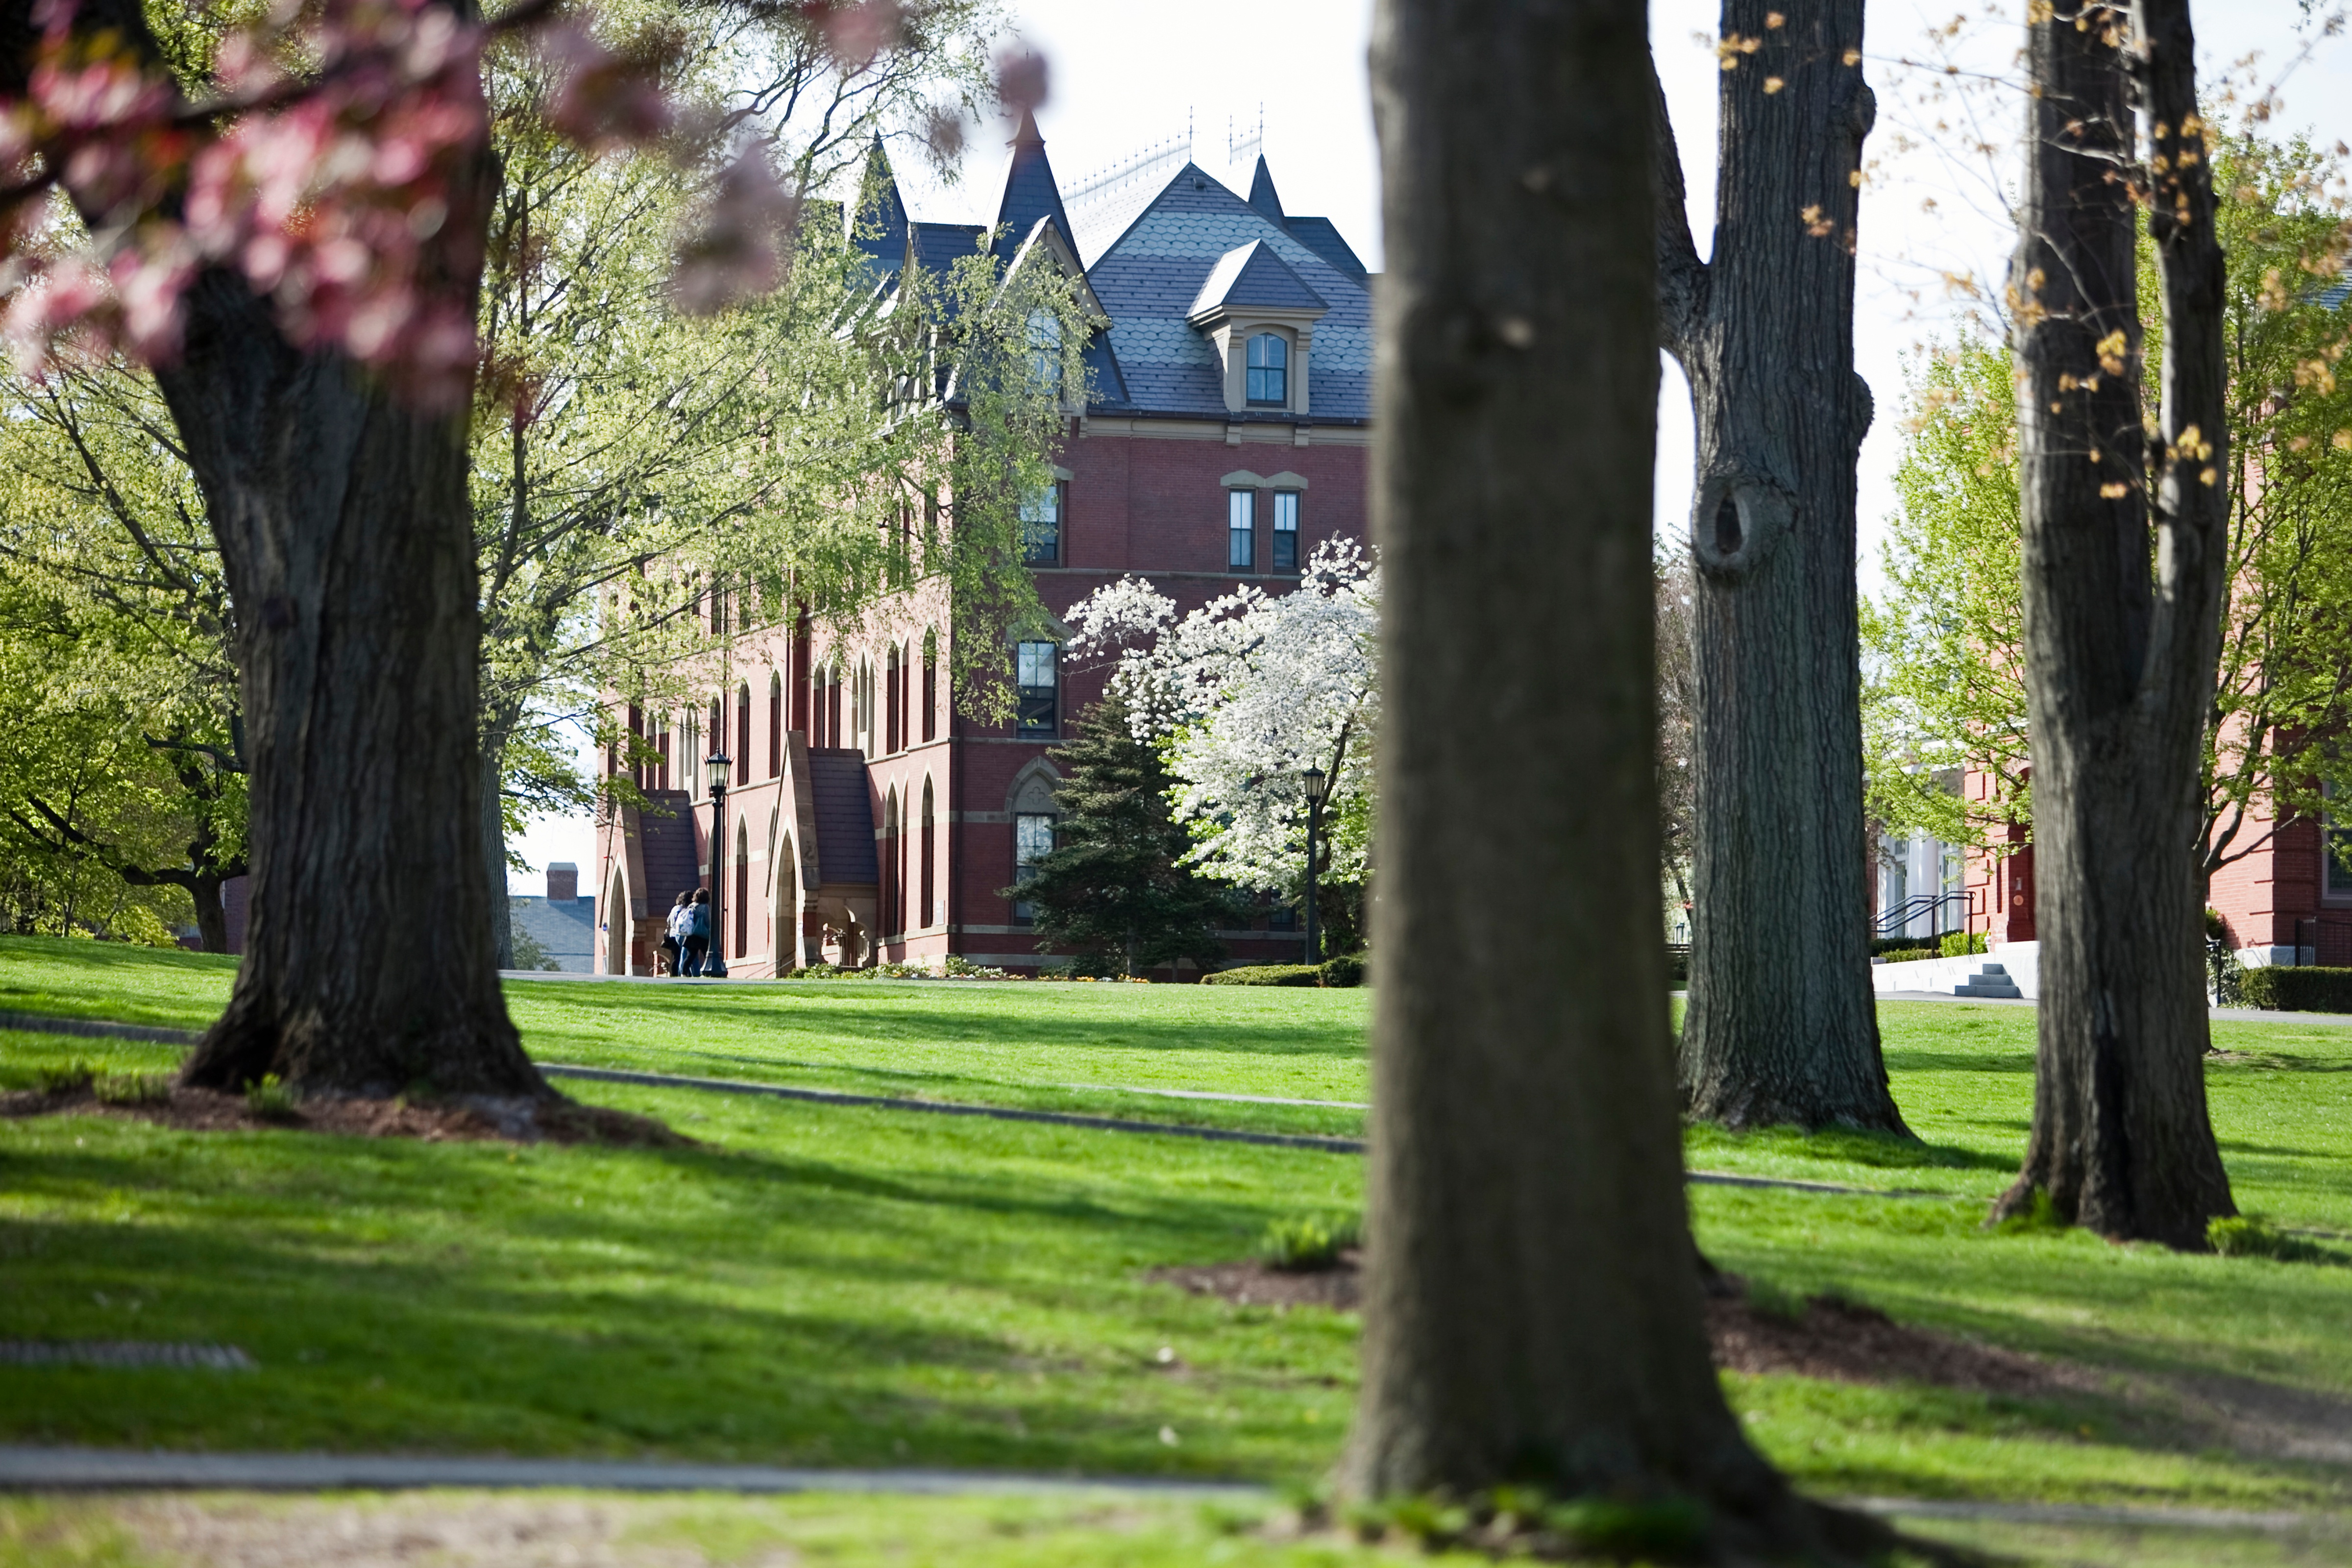 West-Hall-Through-Trees-Tufts-University-1.jpg